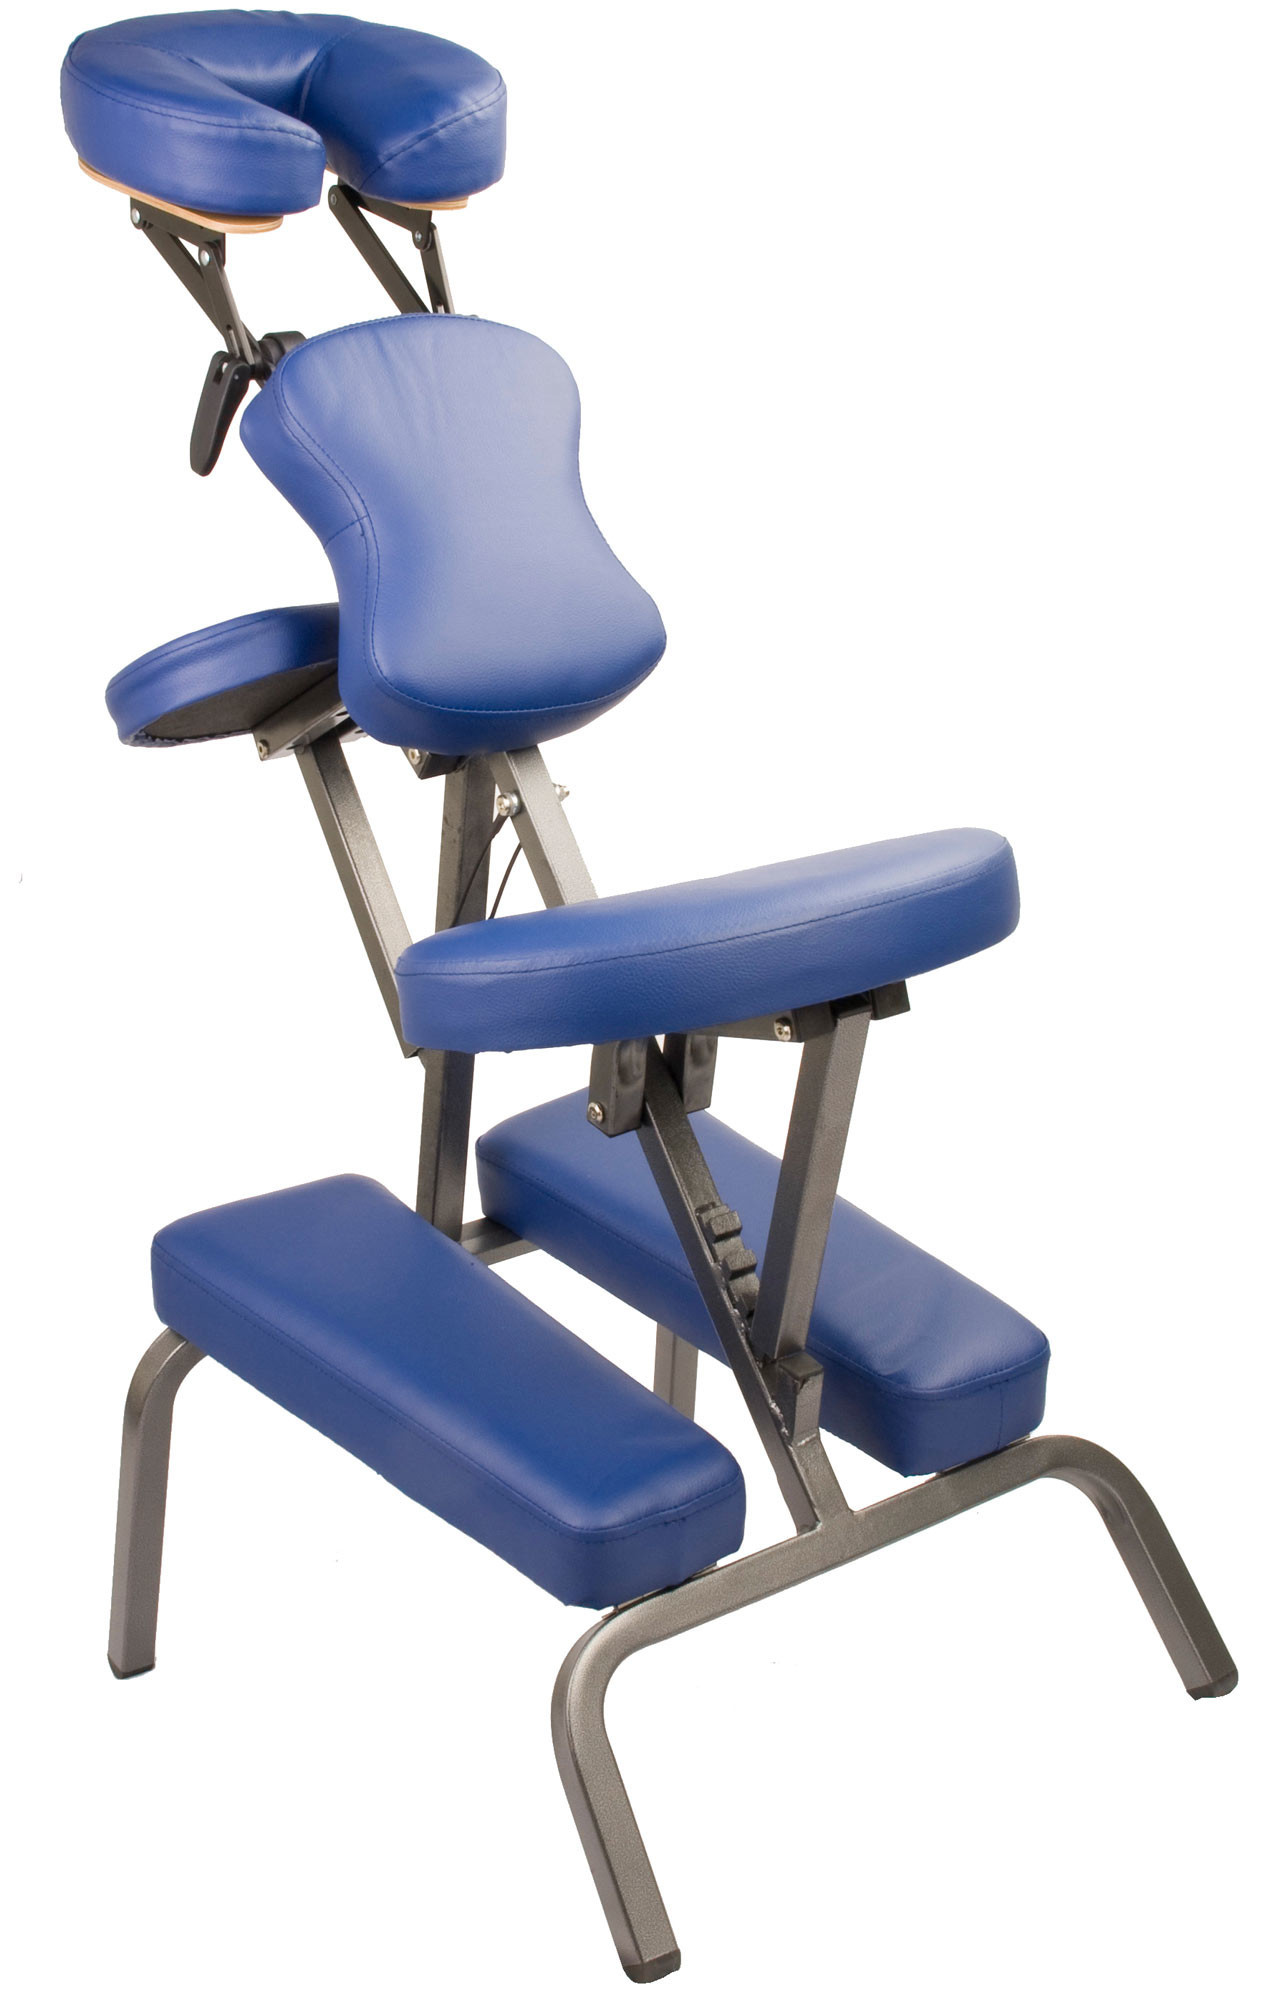 Forever Beauty Portable Tatto Massage Chair Table Blue & Reviews